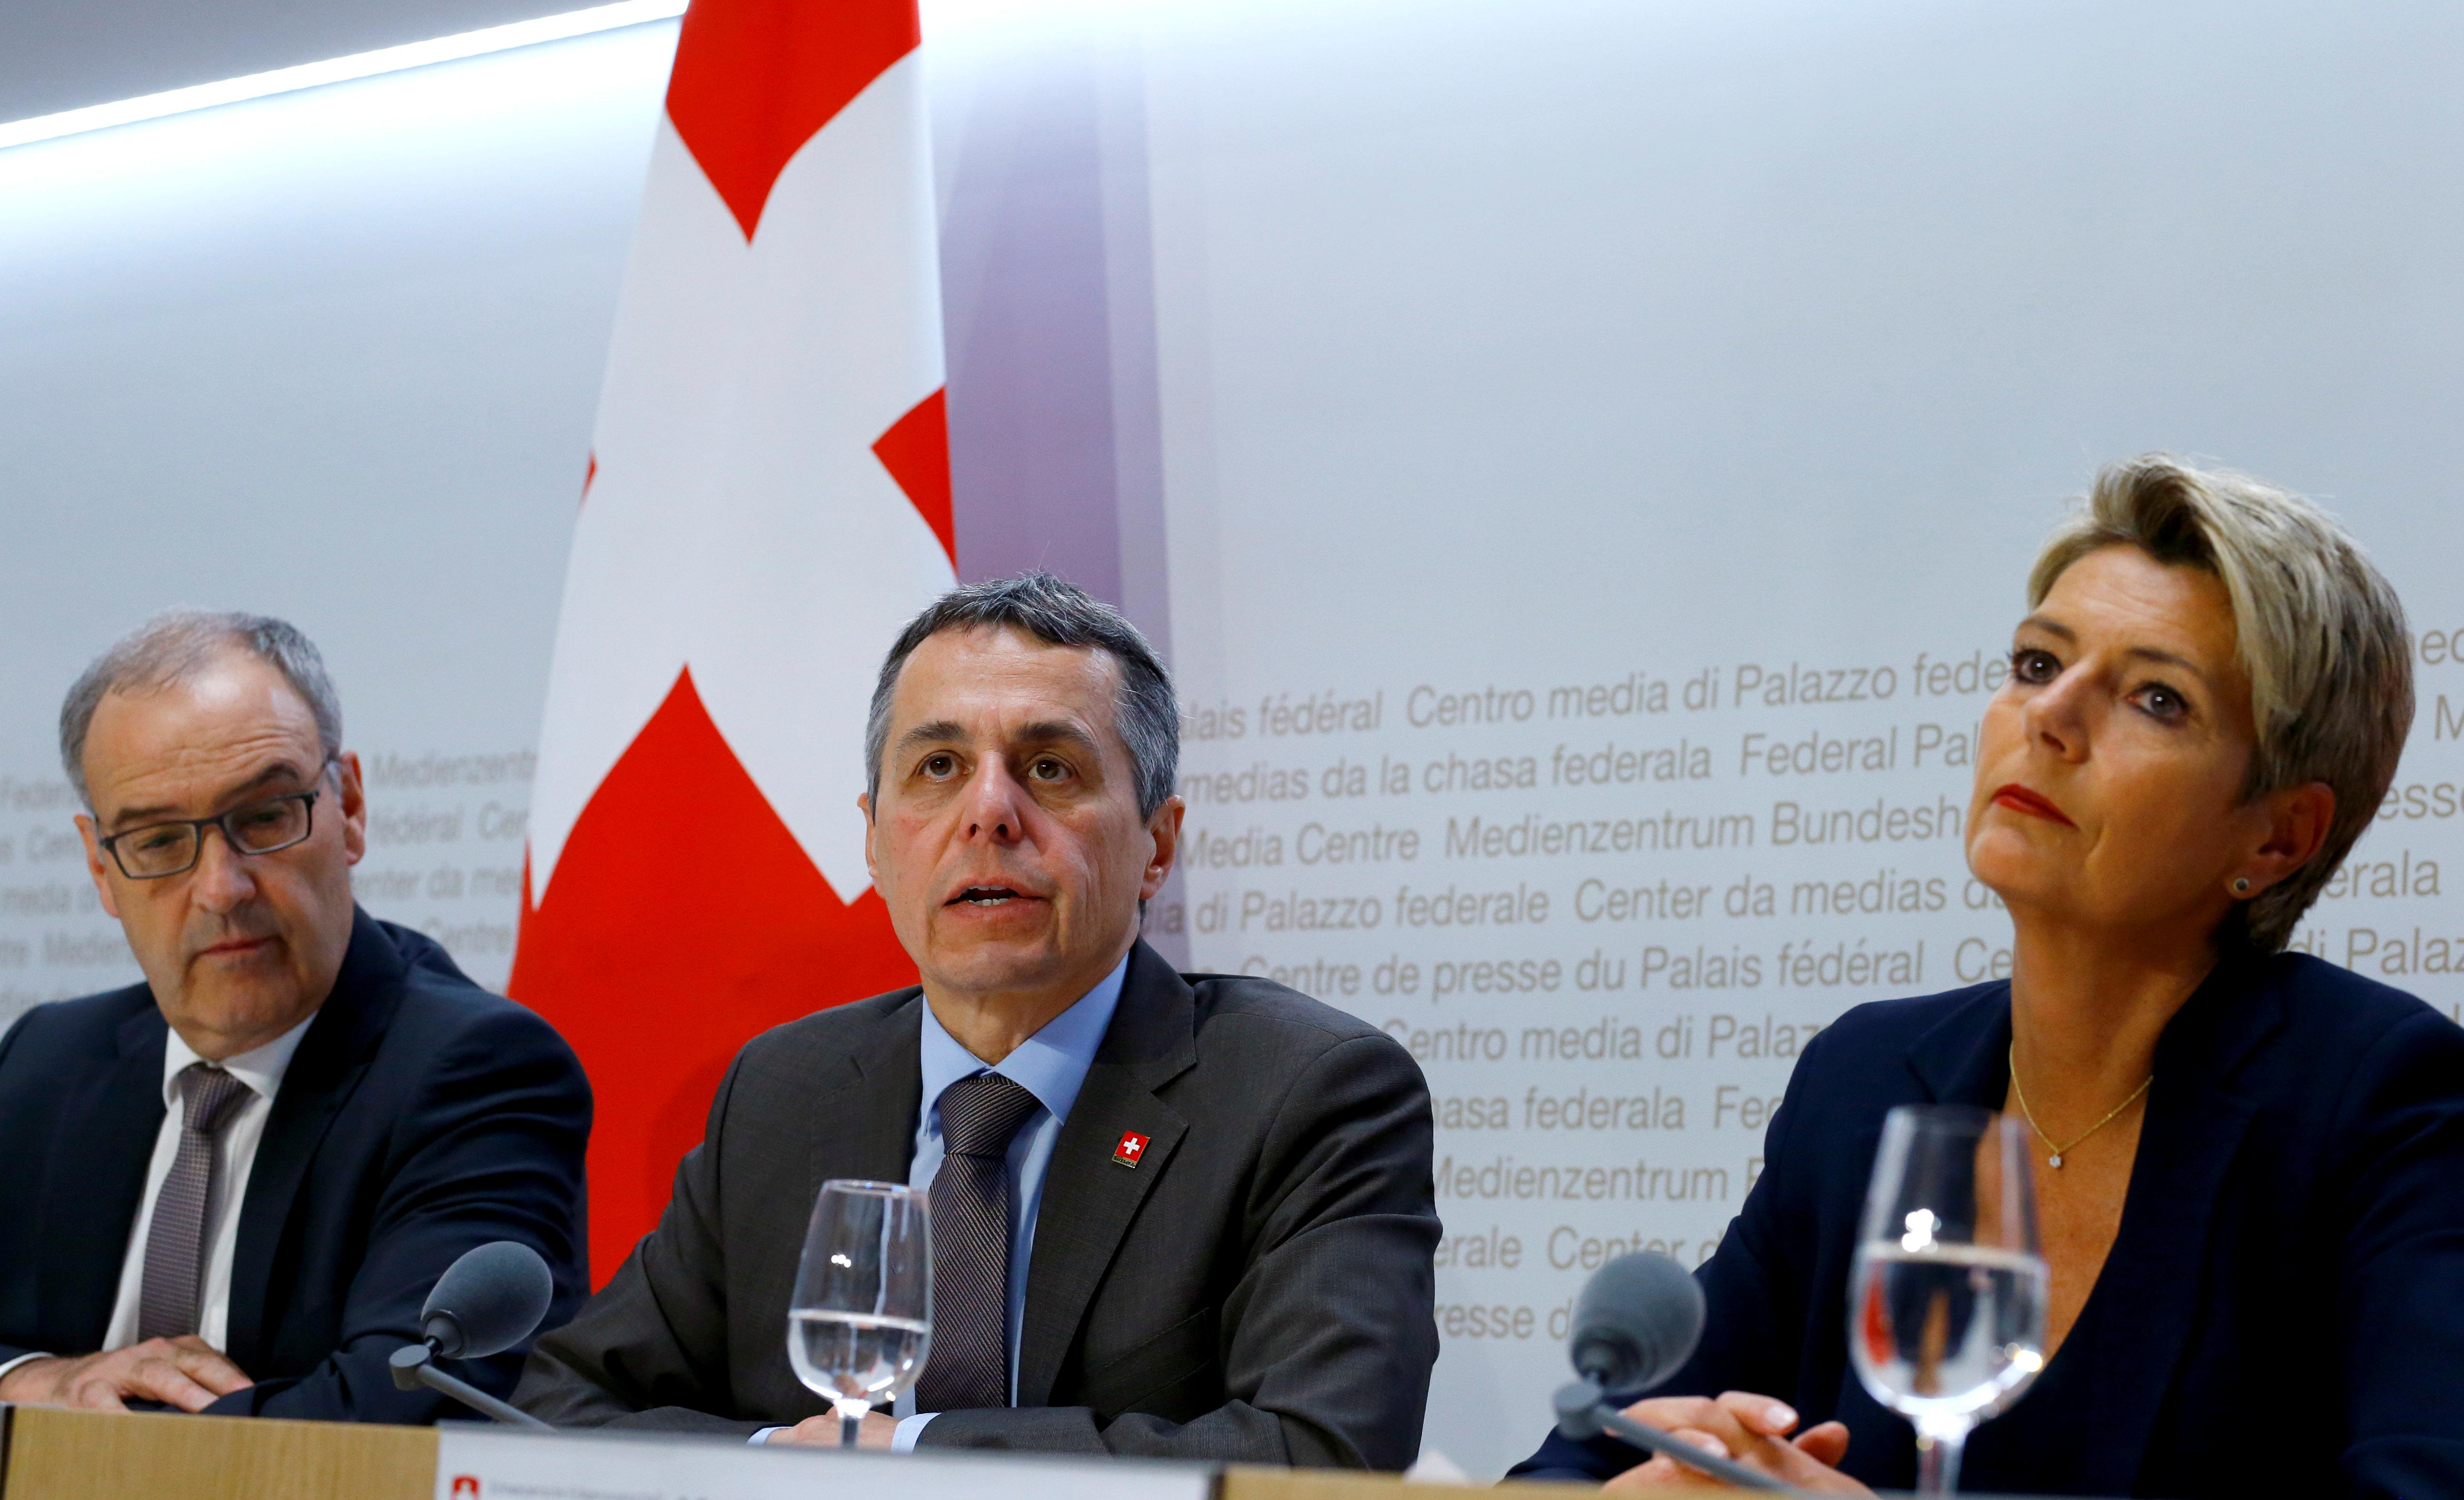 Swiss government demands clarifications from the EU in treaty talks